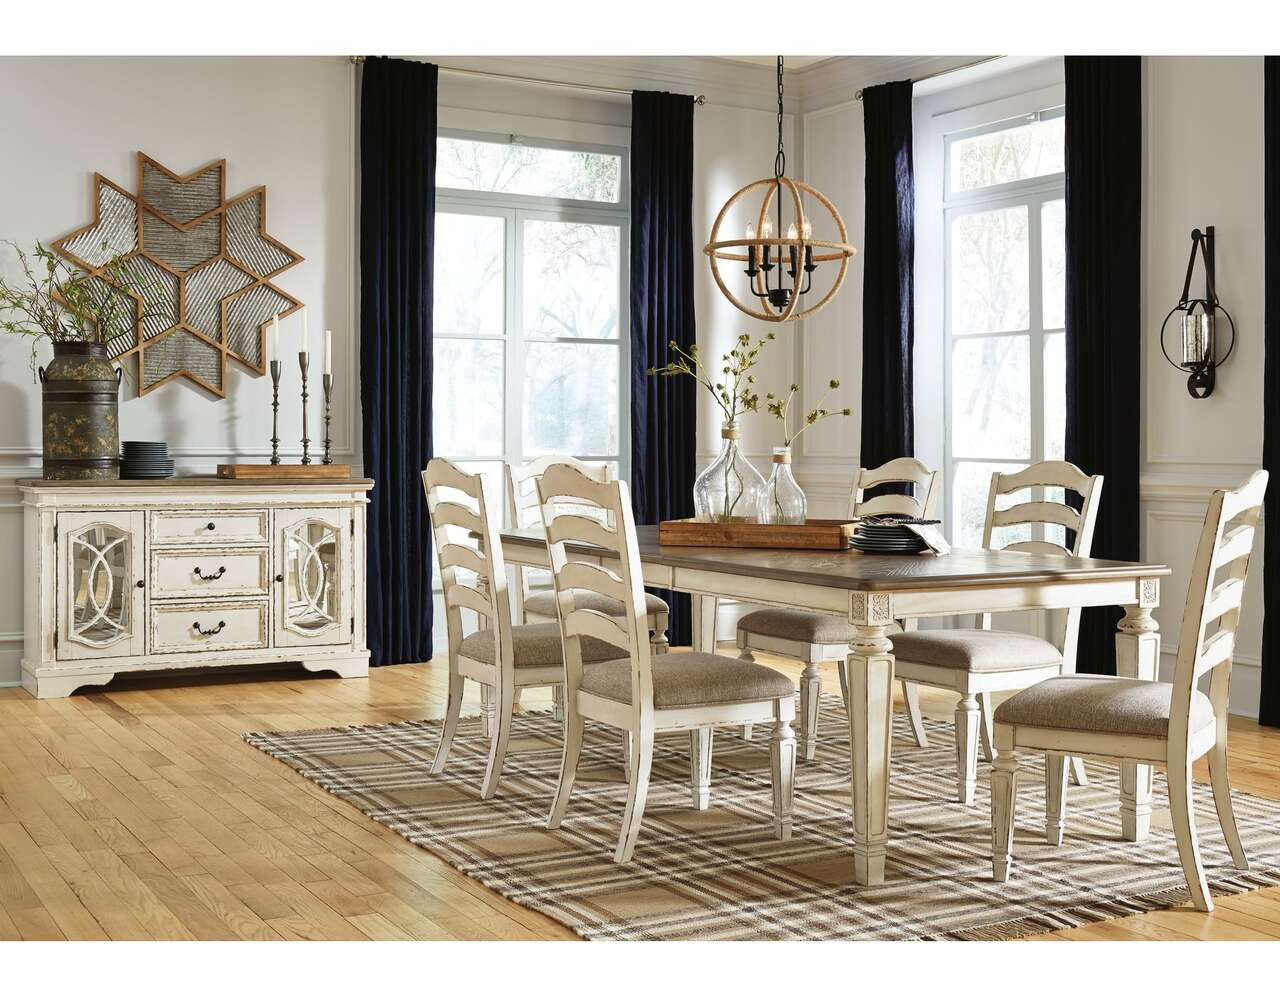 743 Realyn Chipped White Dining Room Set 8 Pcs $2195